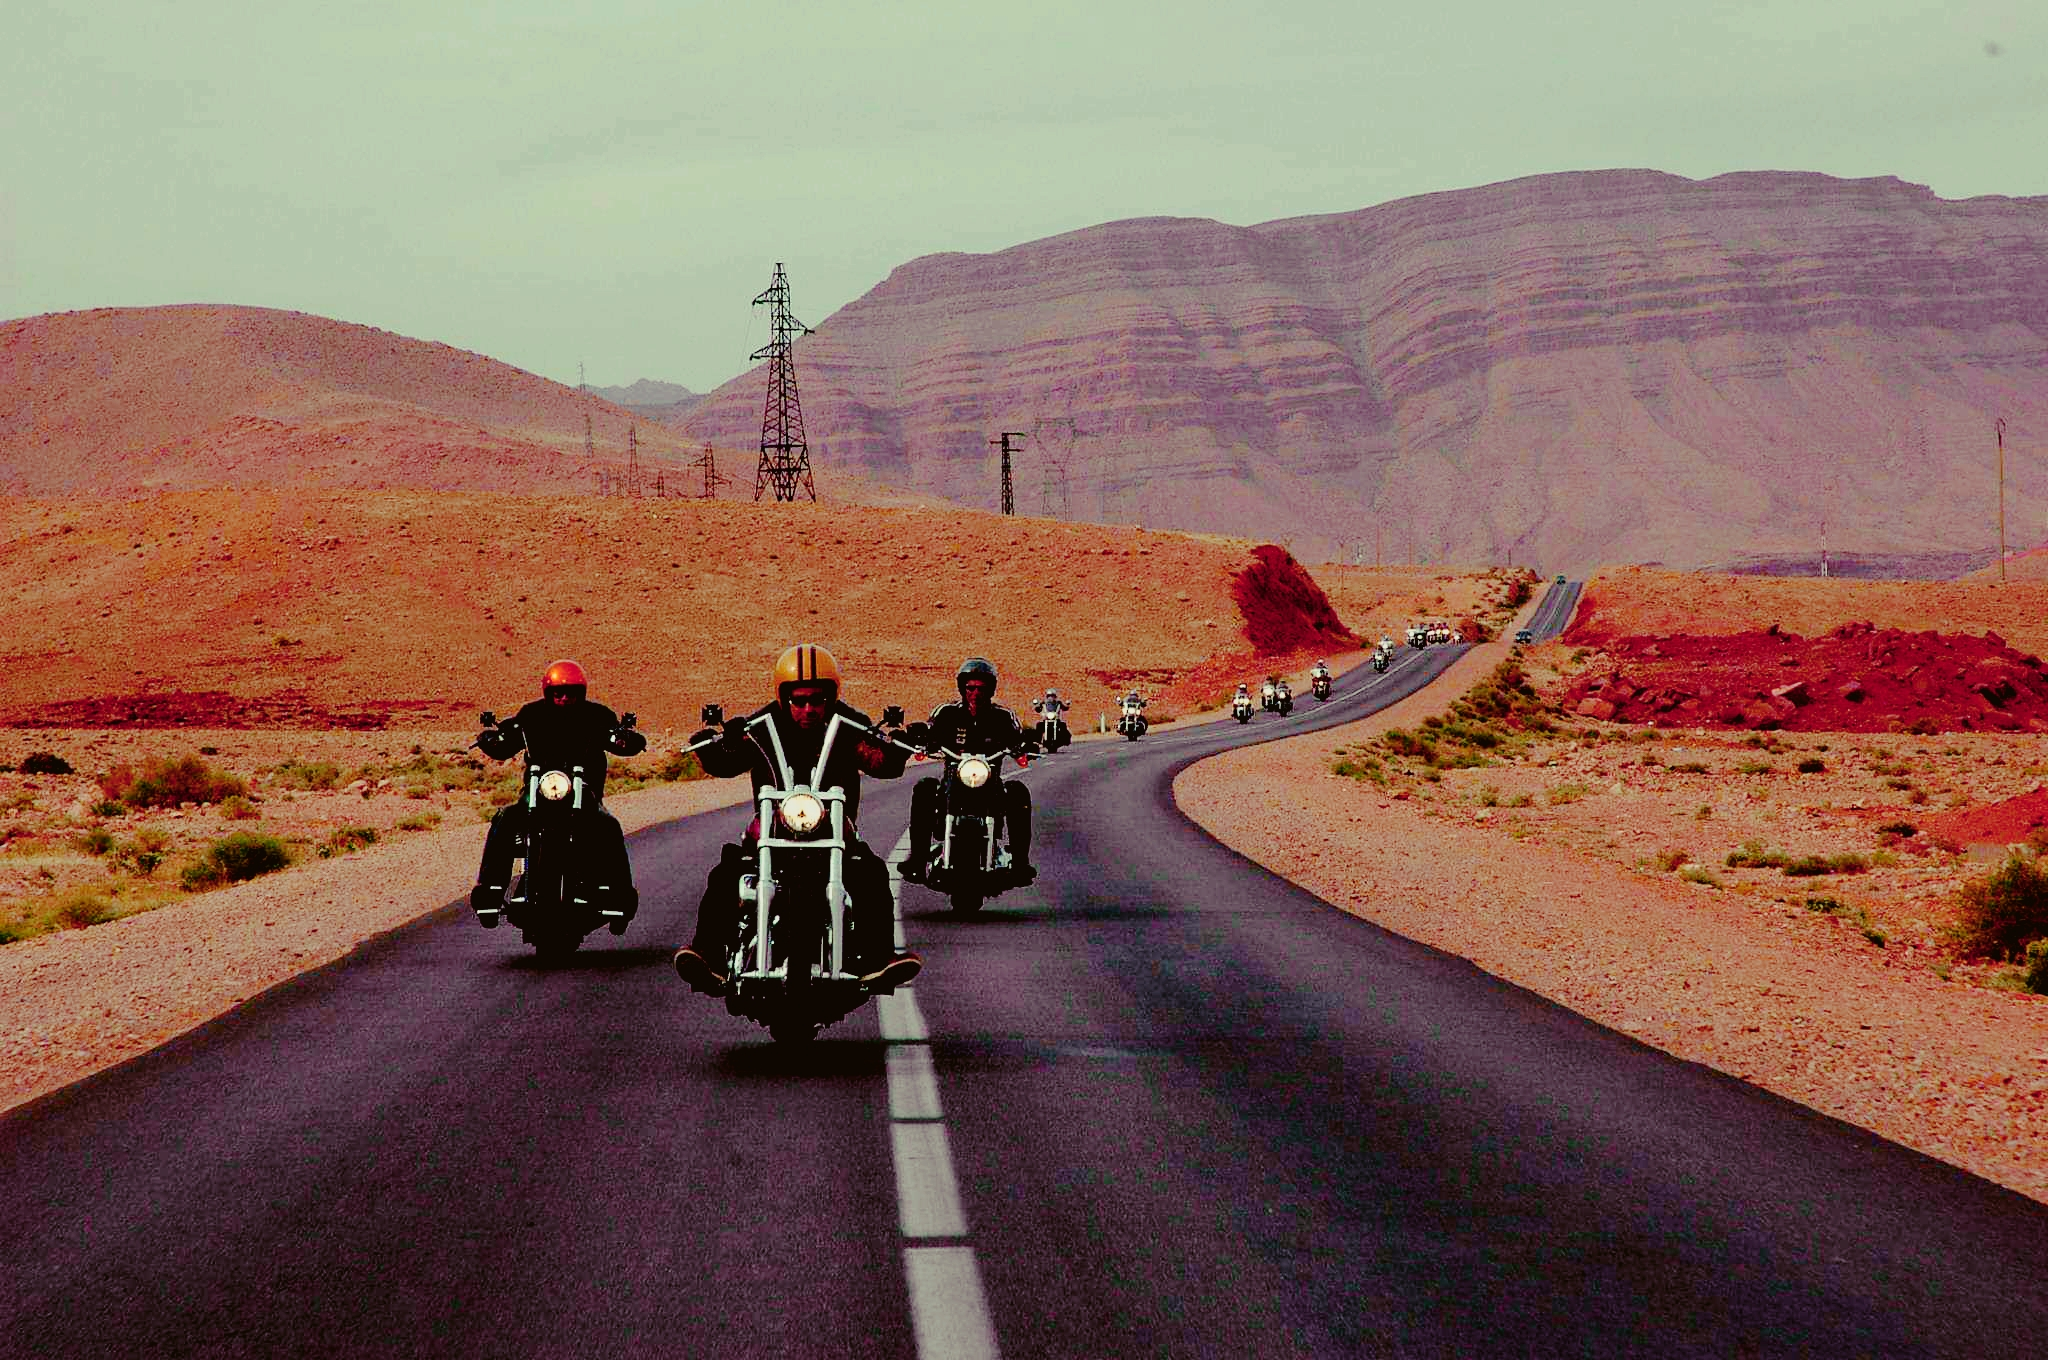 Take a Ride through the Magnificent Land of Morocco on the back of a Harley Davidson